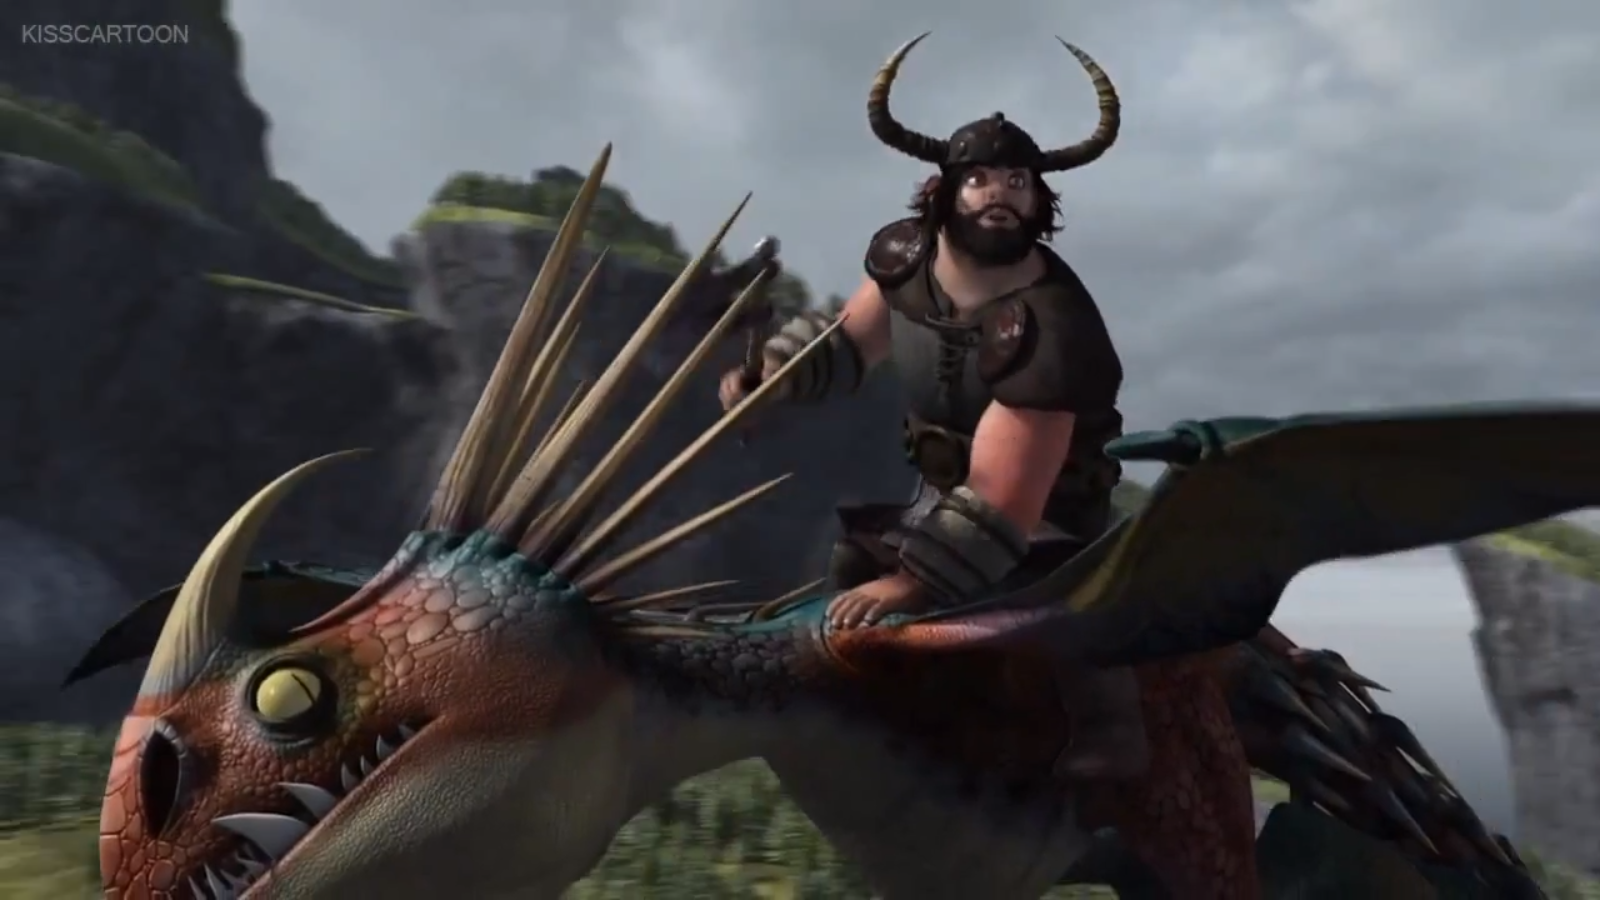 how to train your dragon images gallery